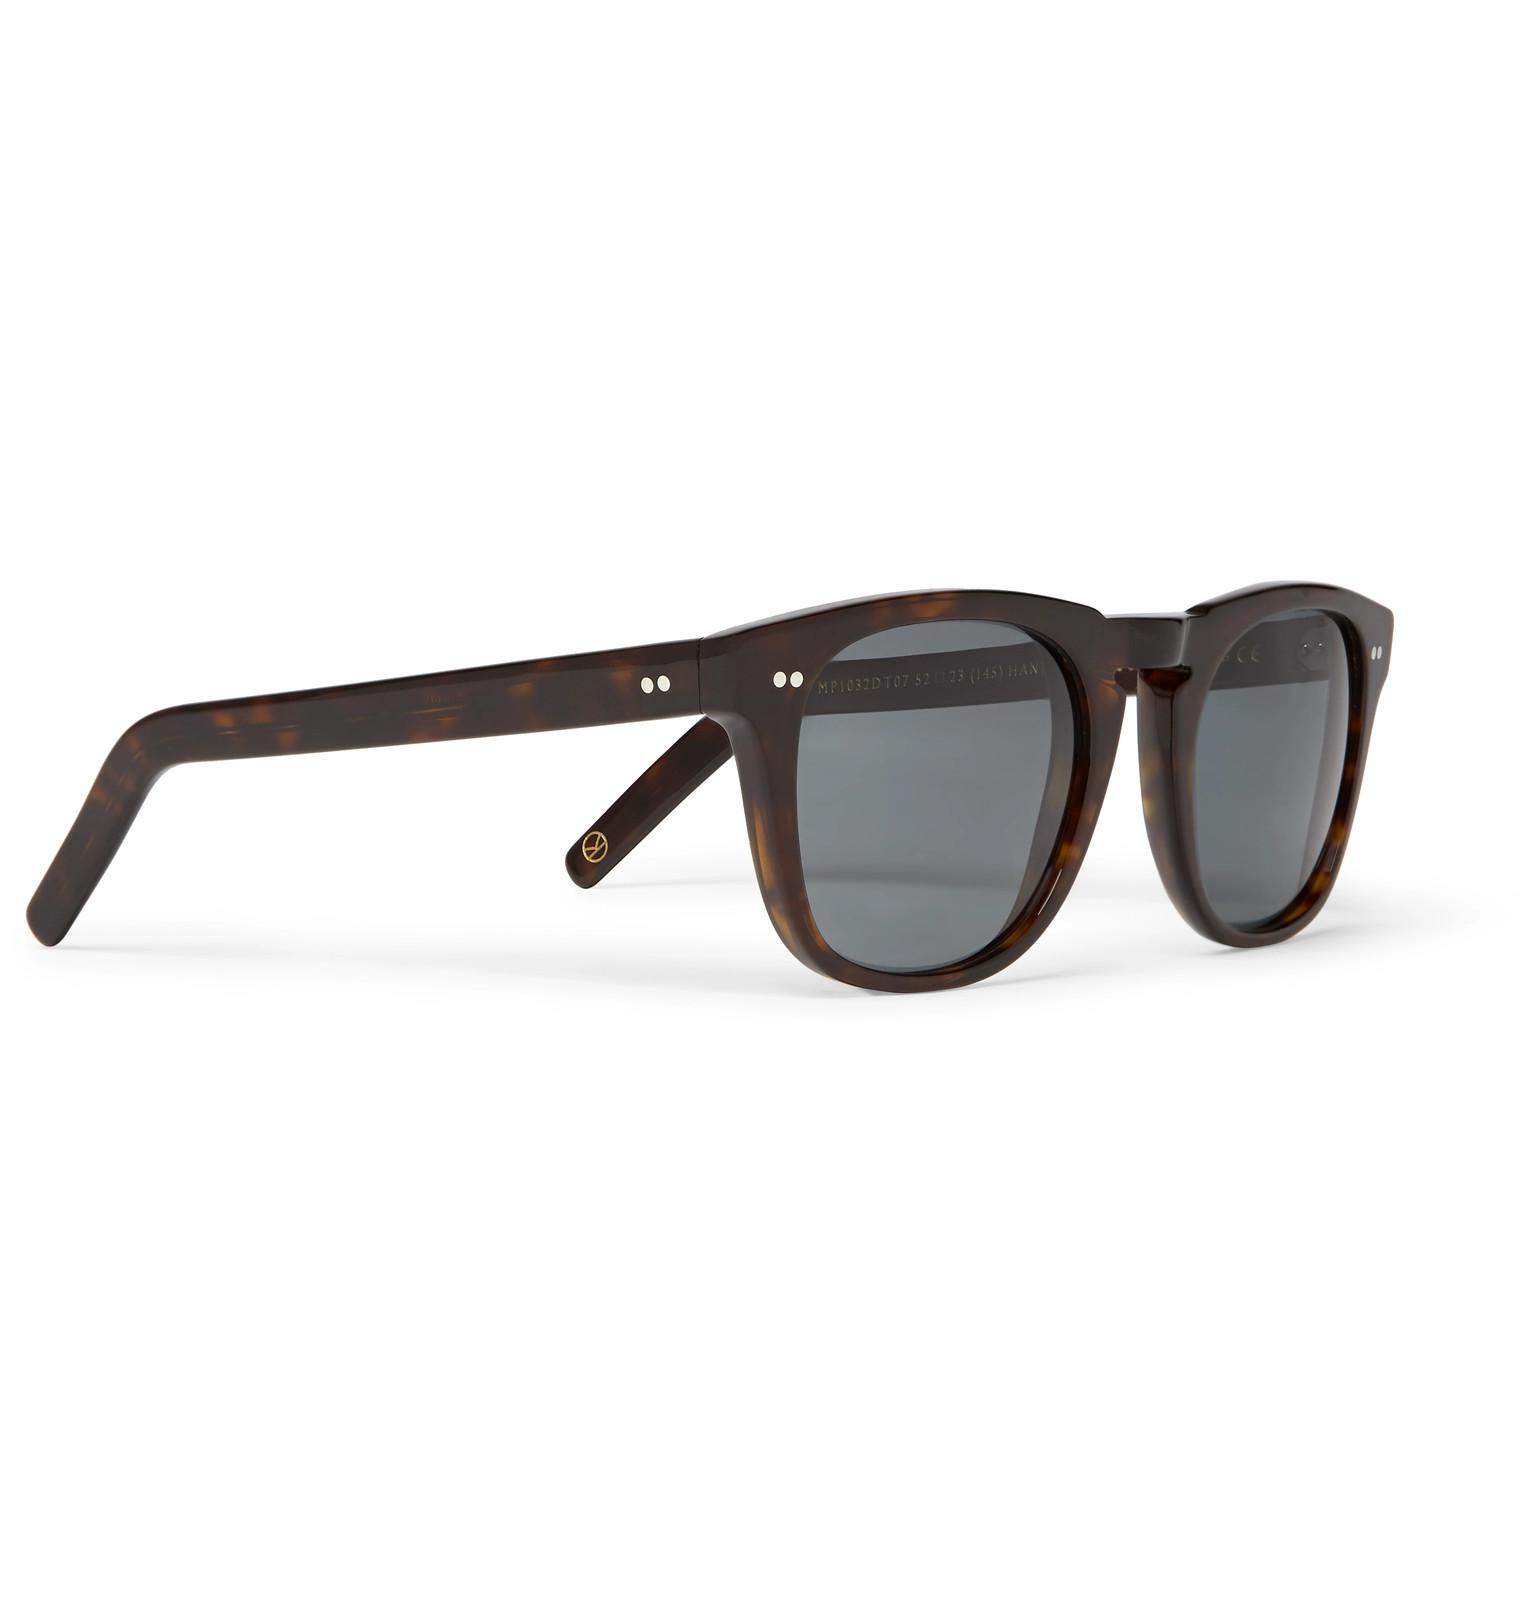 44b3a8fcae Kingsman - Brown + Cutler And Gross D-frame Tortoiseshell Acetate Sunglasses  for Men -. View fullscreen